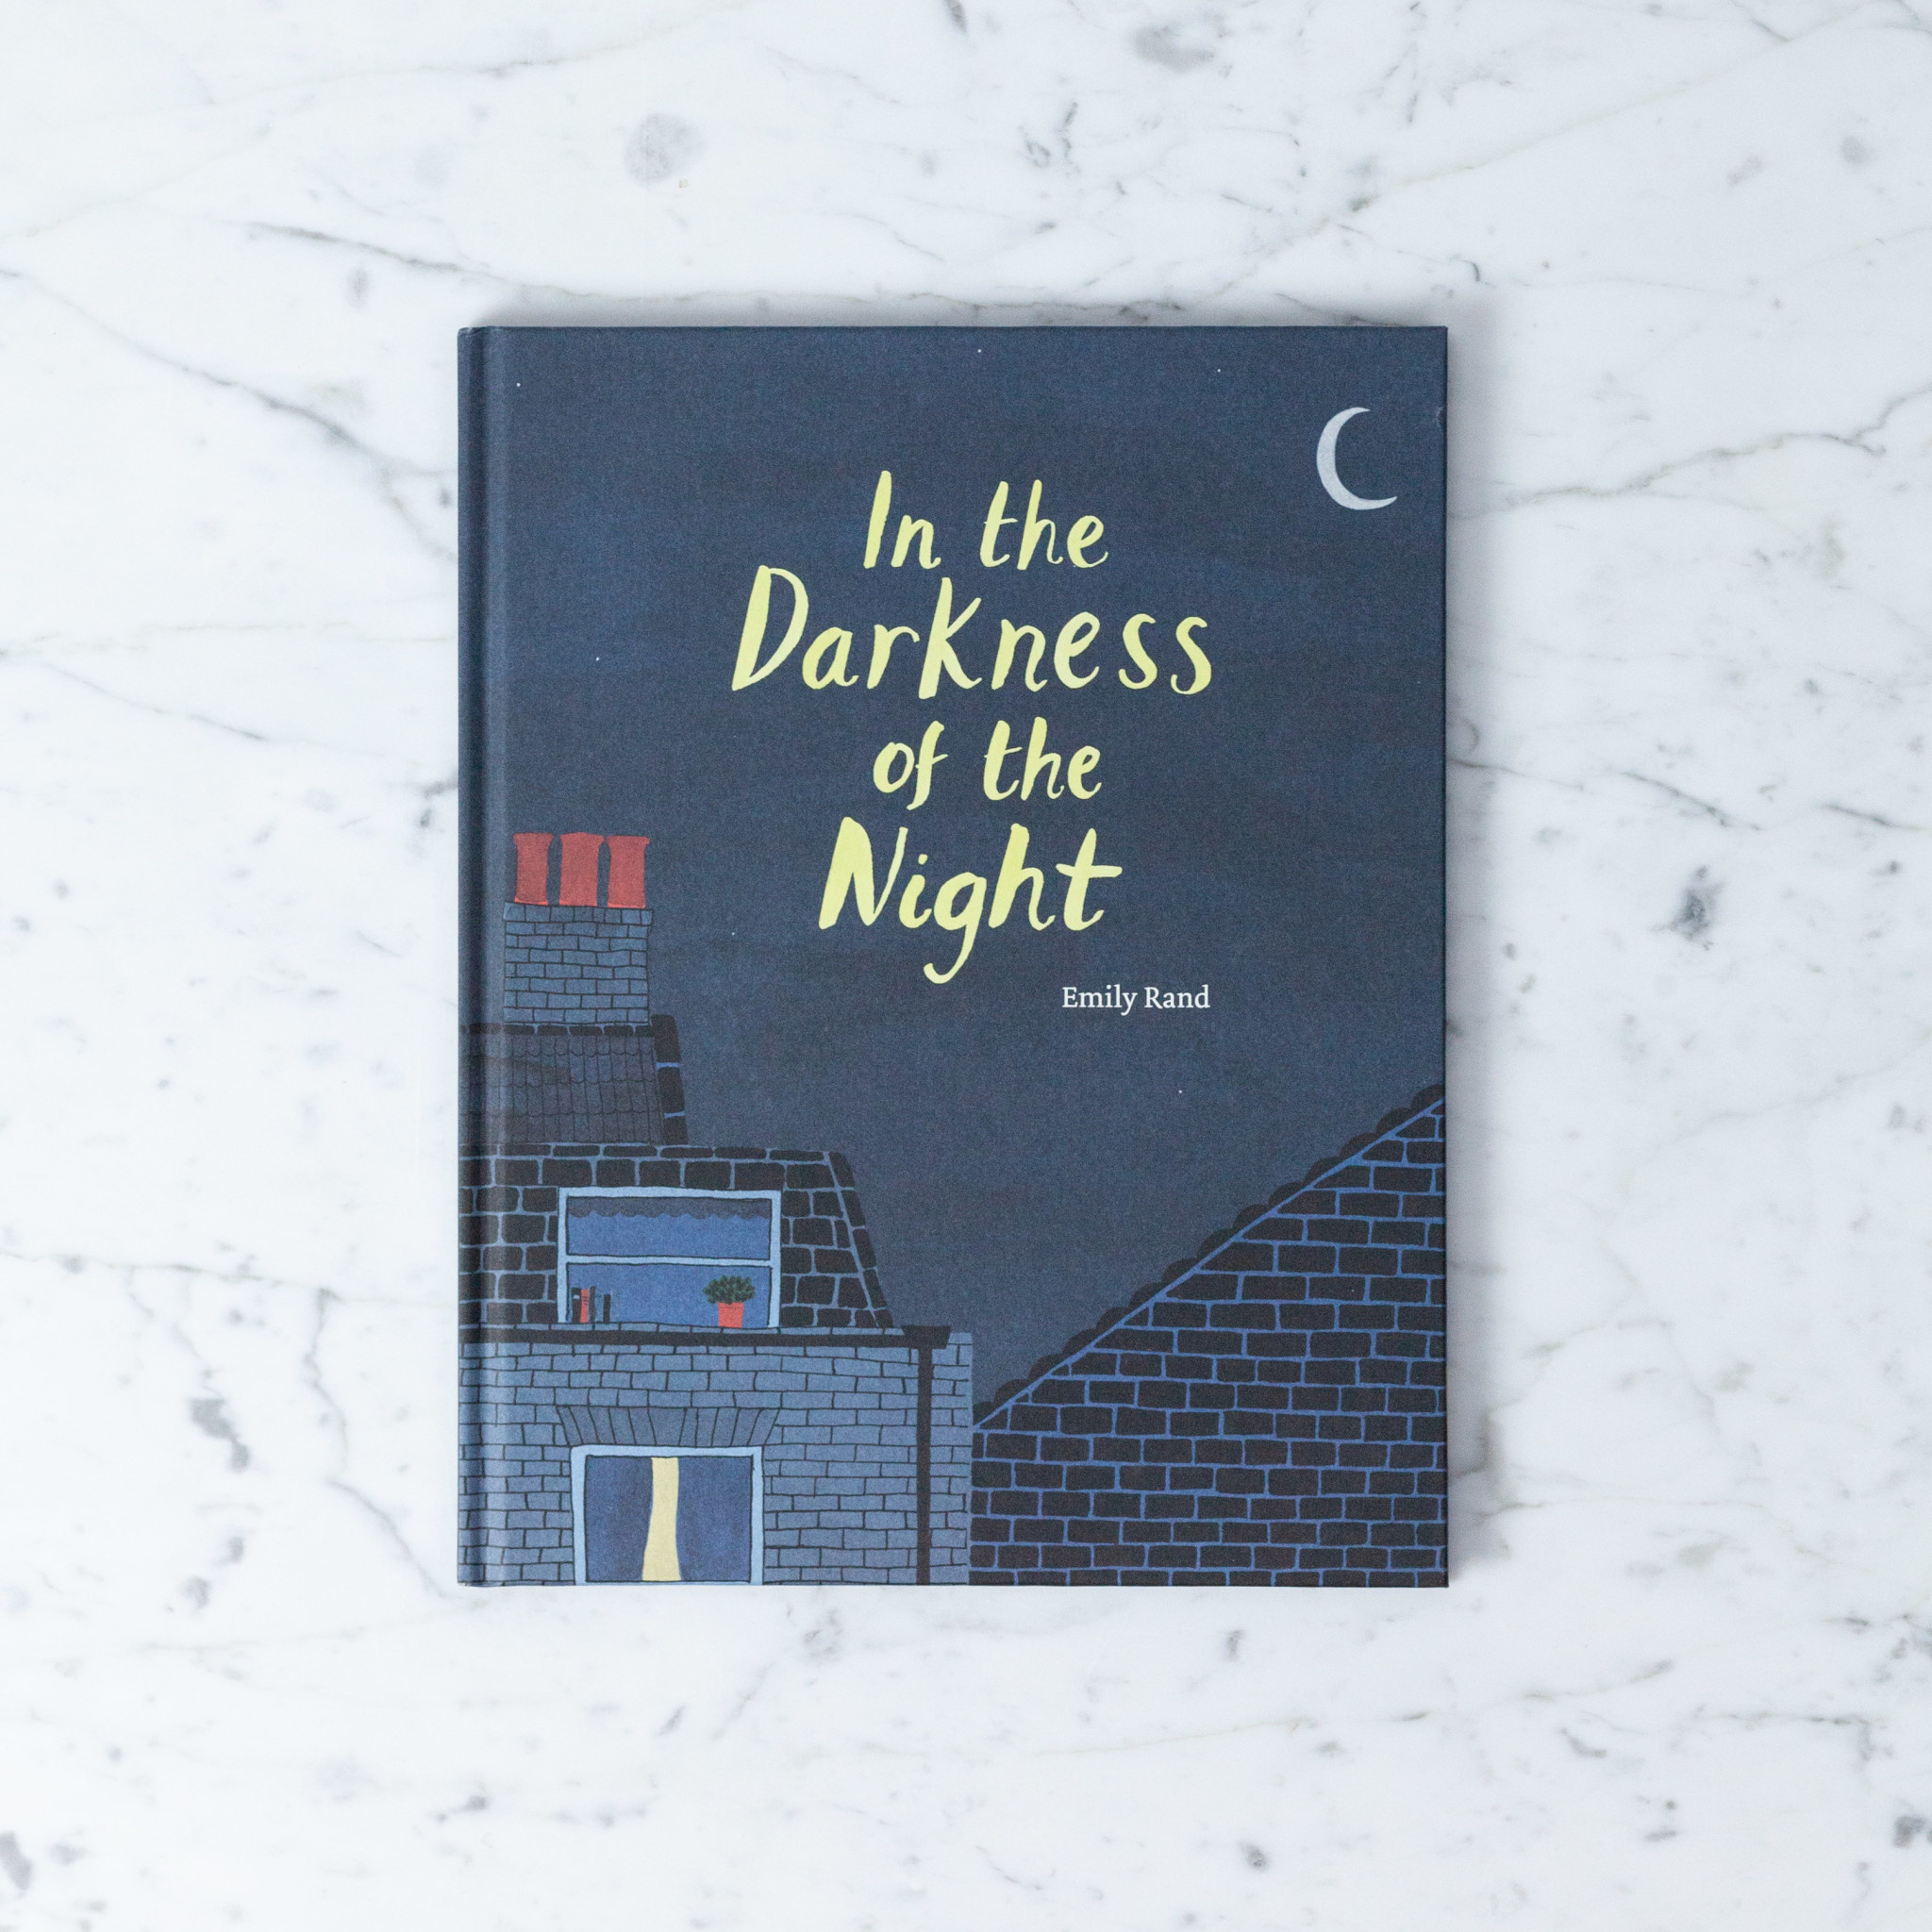 In the Darkness of the Night by Emily Rand